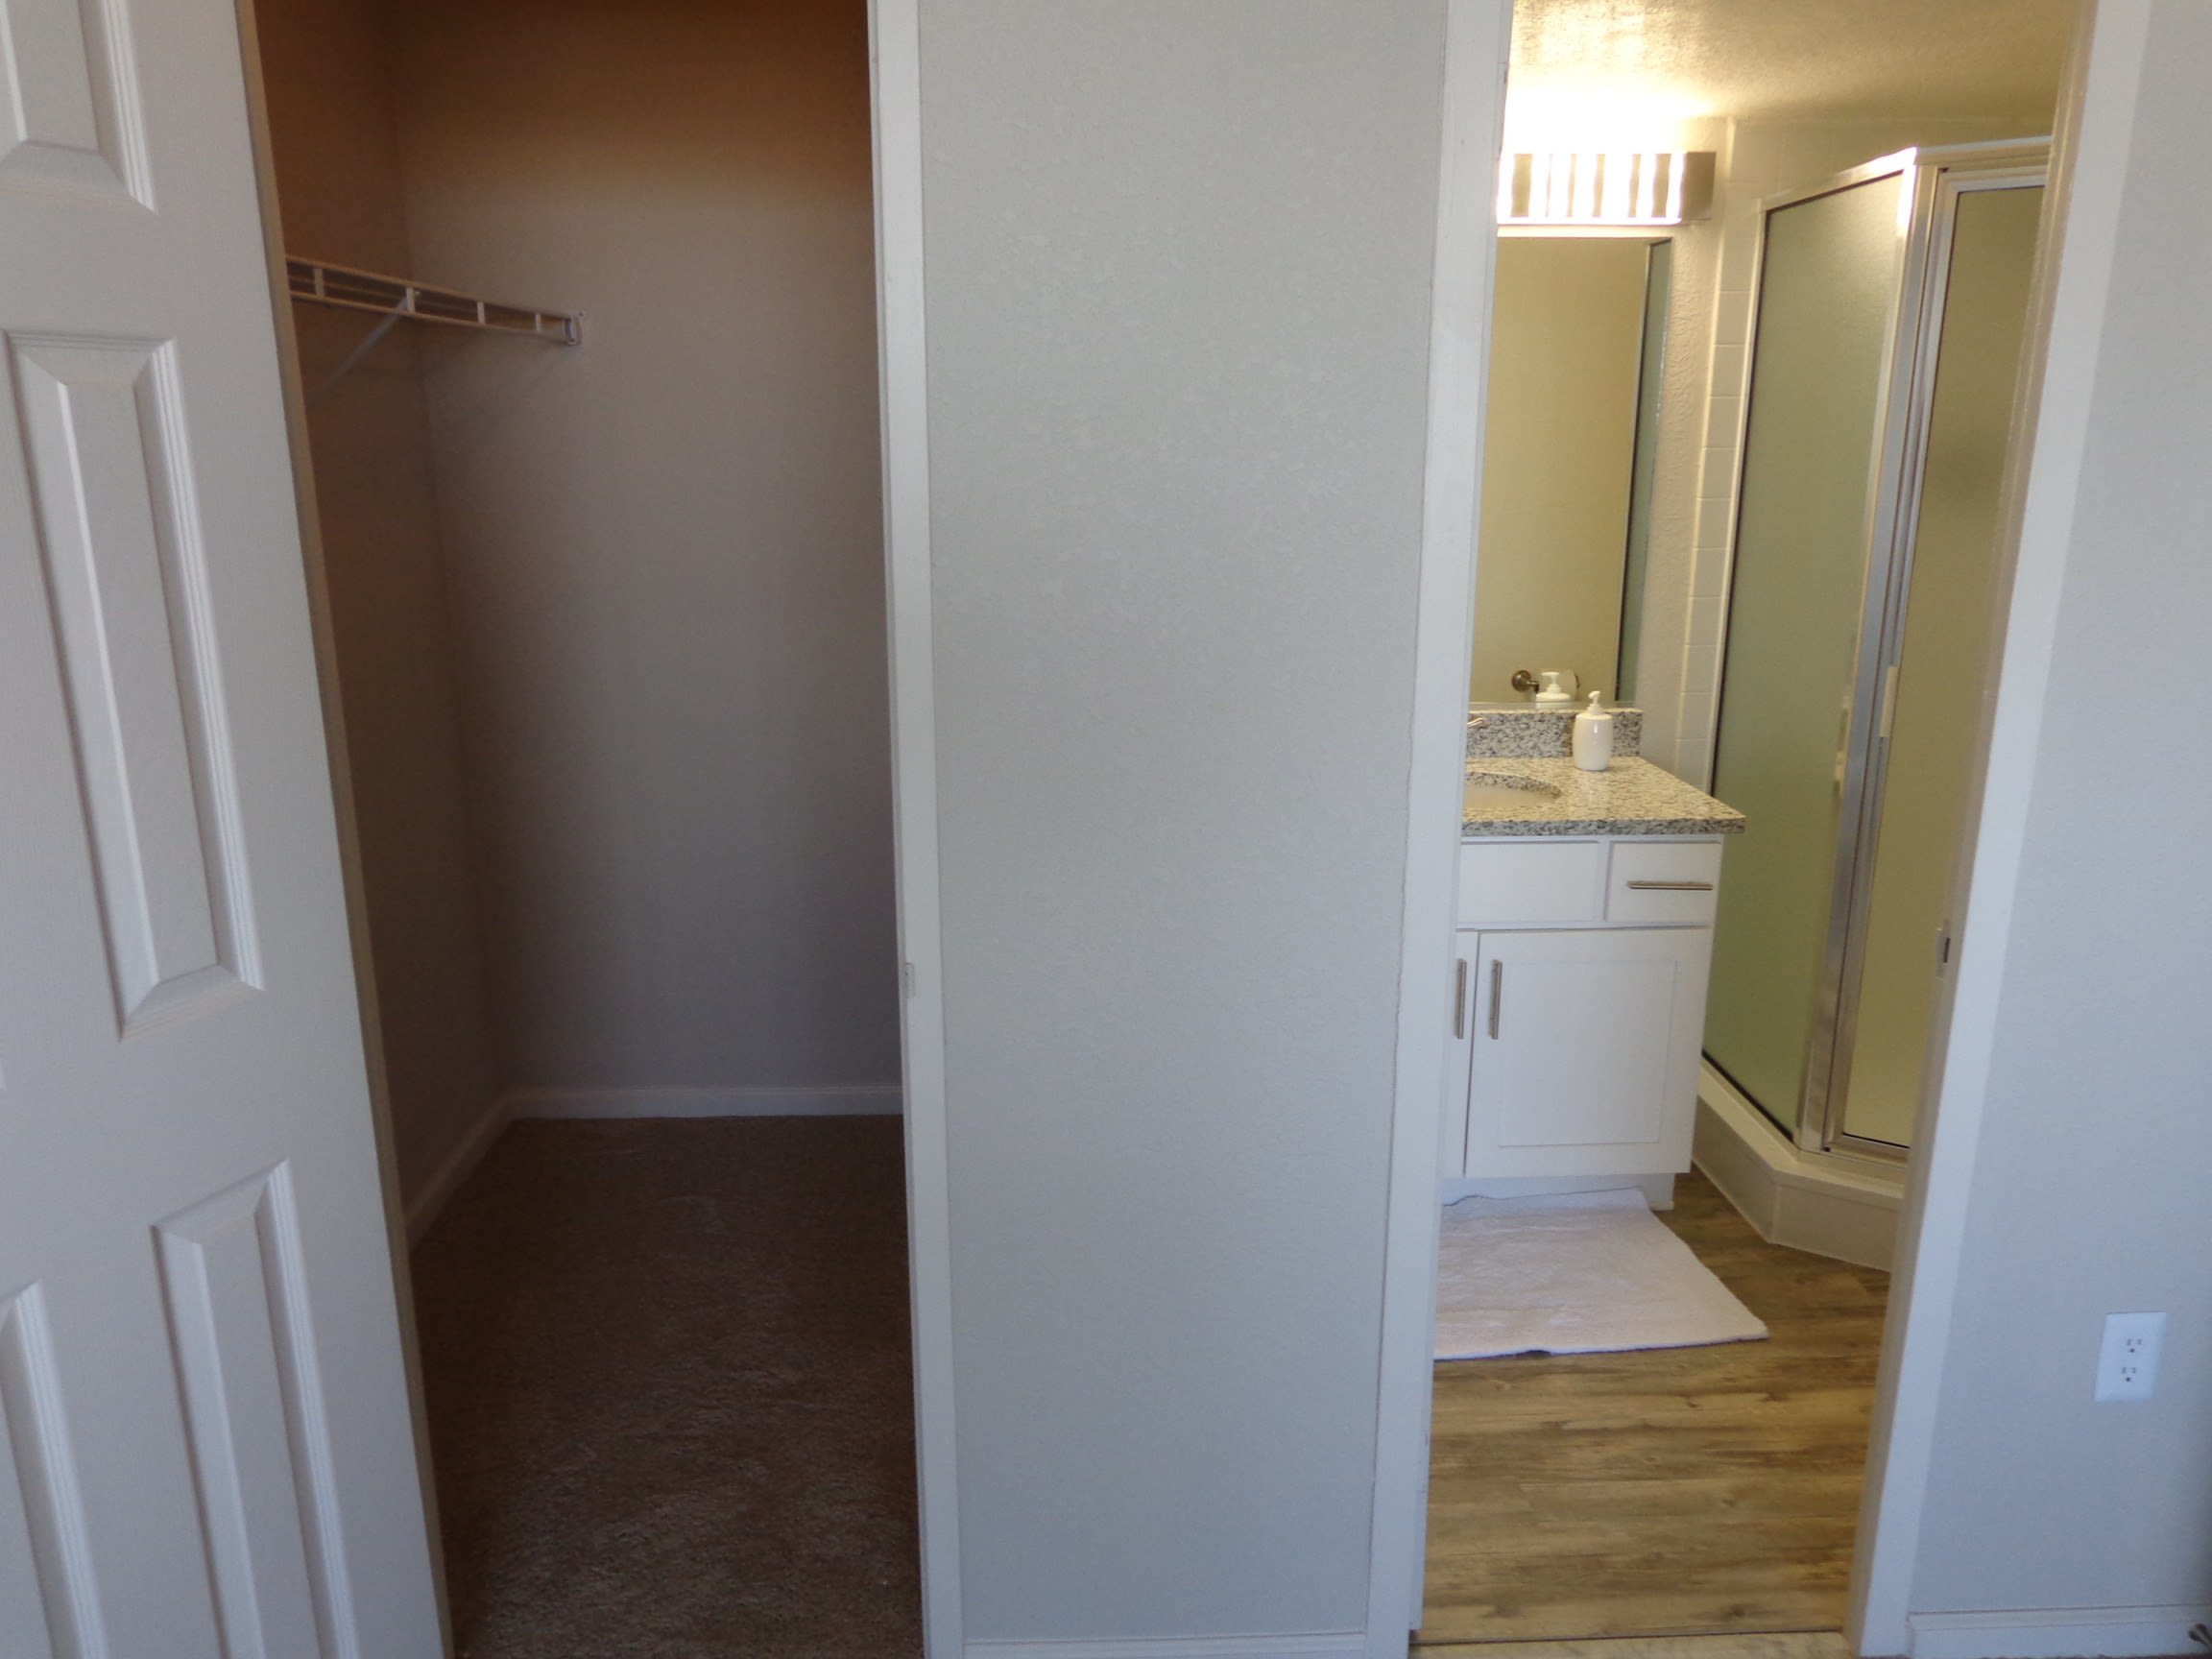 Closet and Bathroom at Hague Towers in Norfolk, Virginia